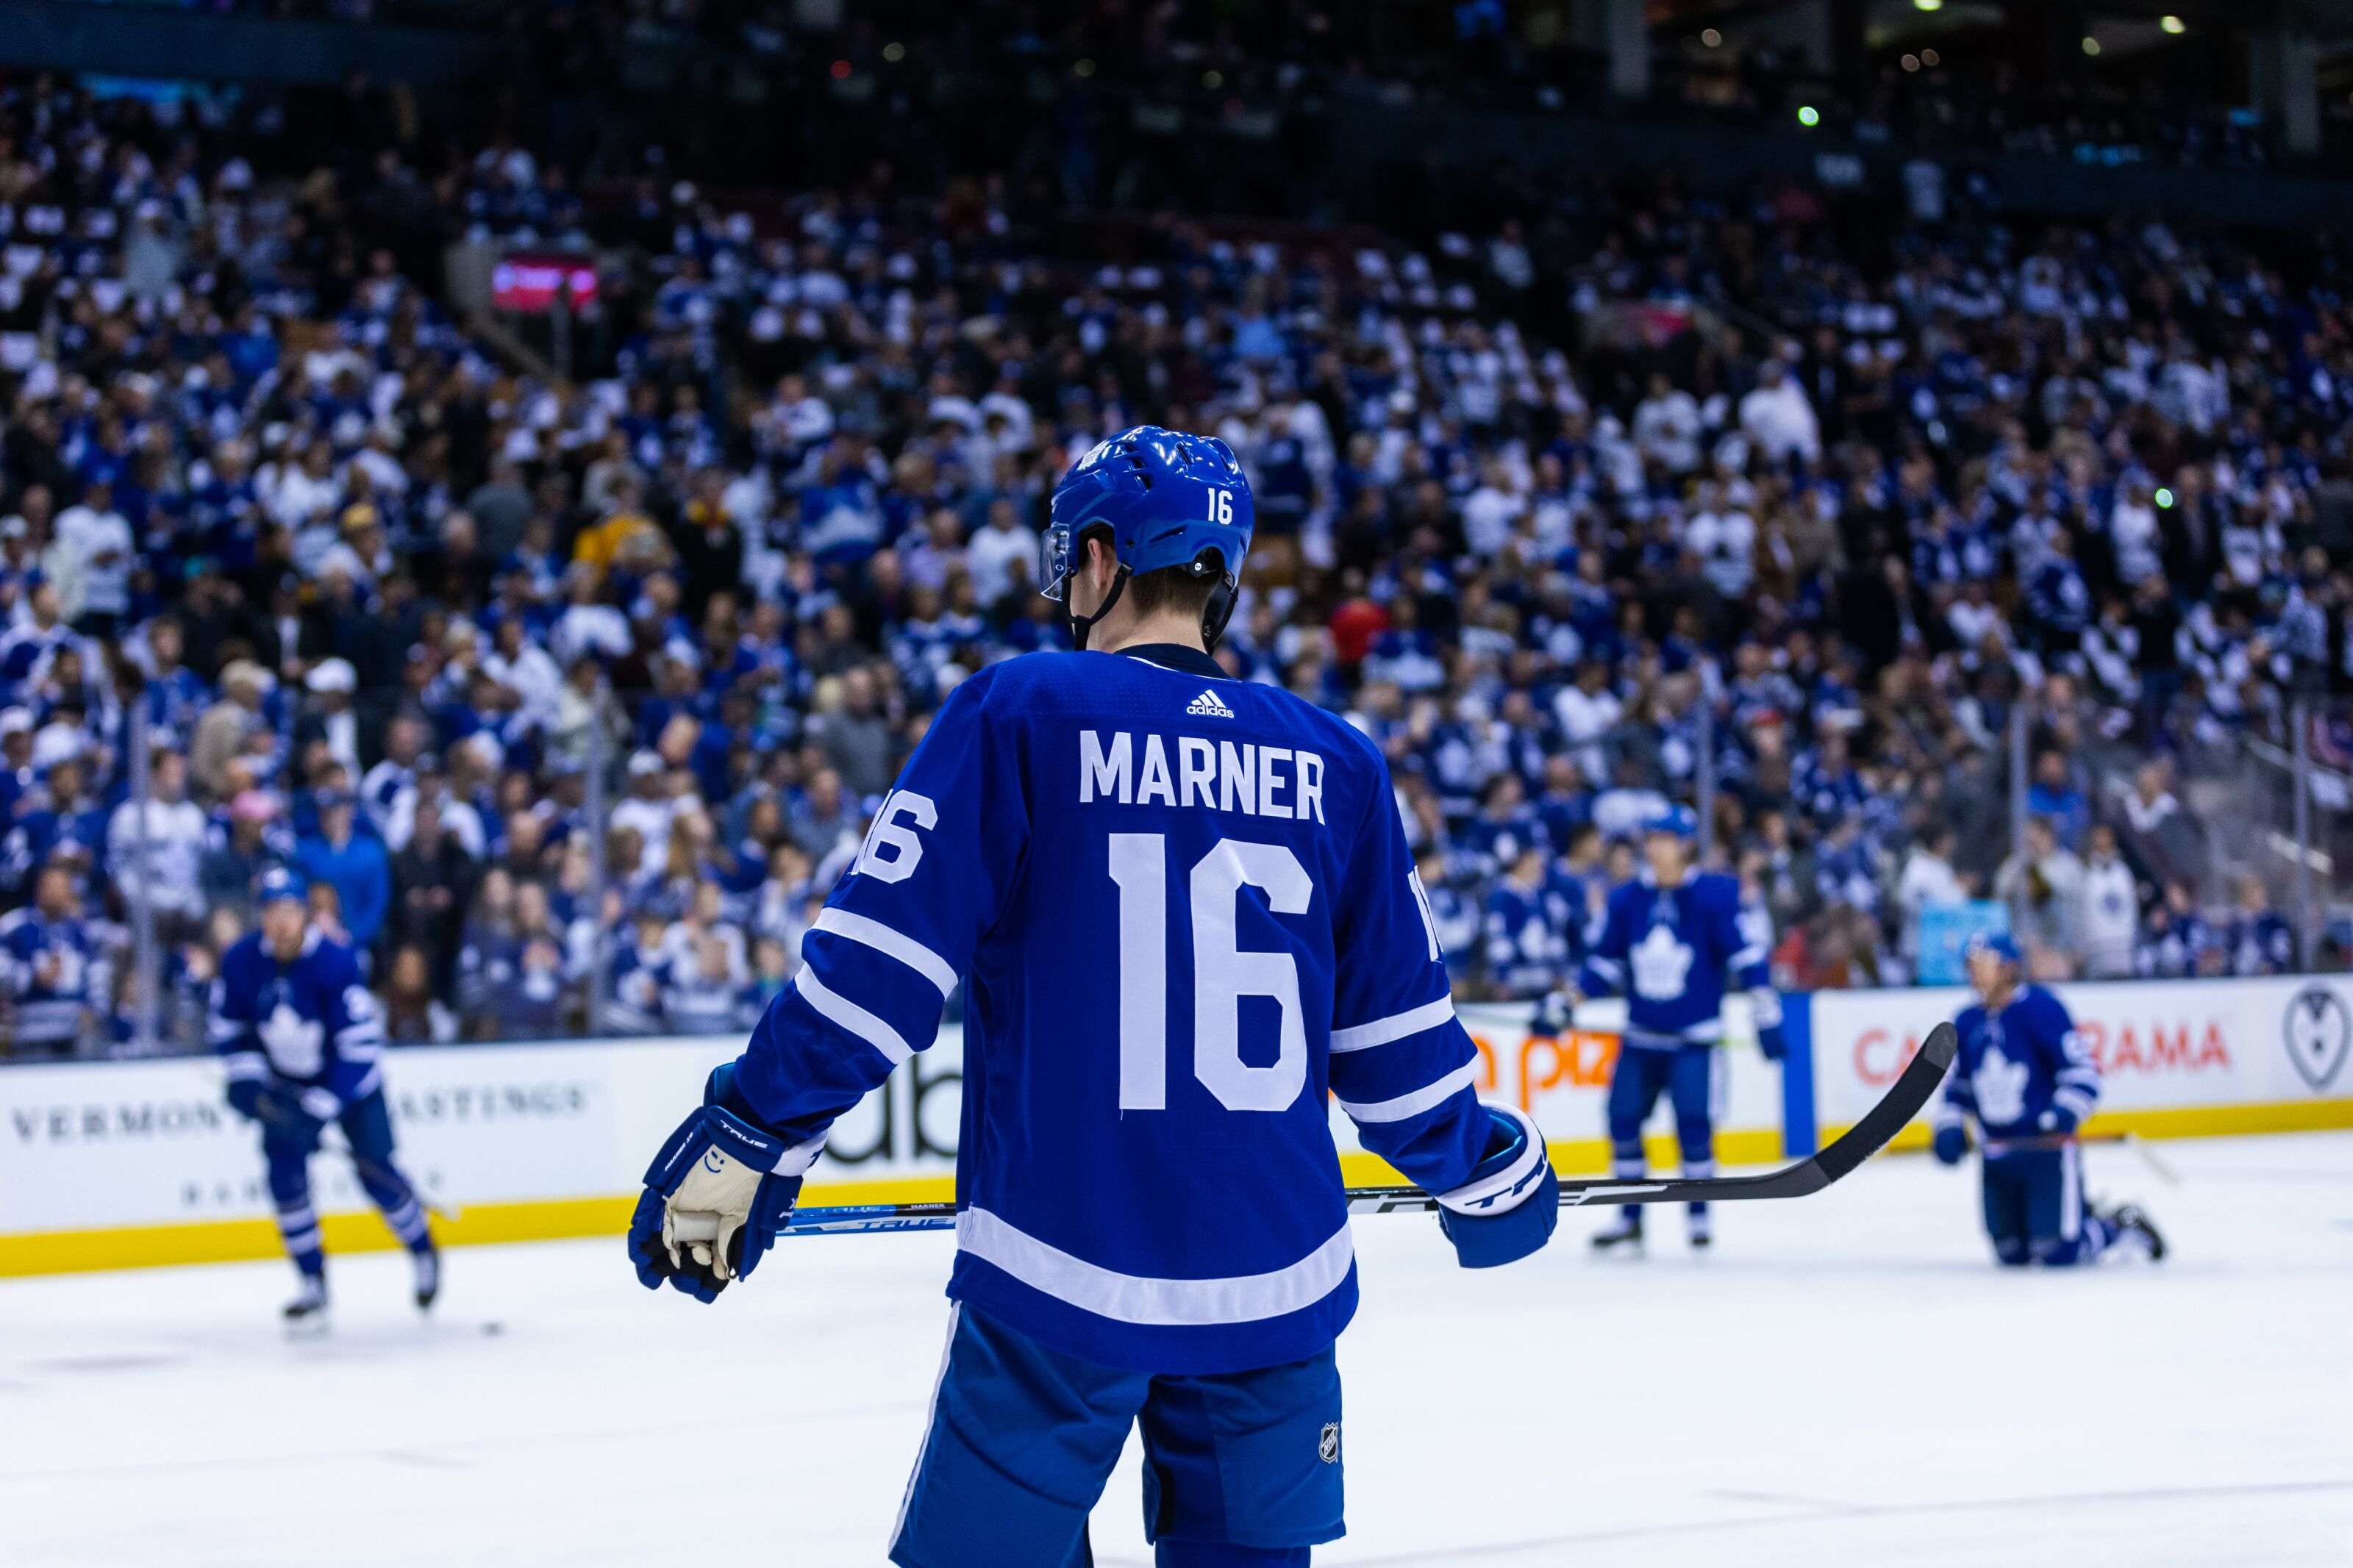 Toronto Maple Leafs and Mitch Marner far apart from deal